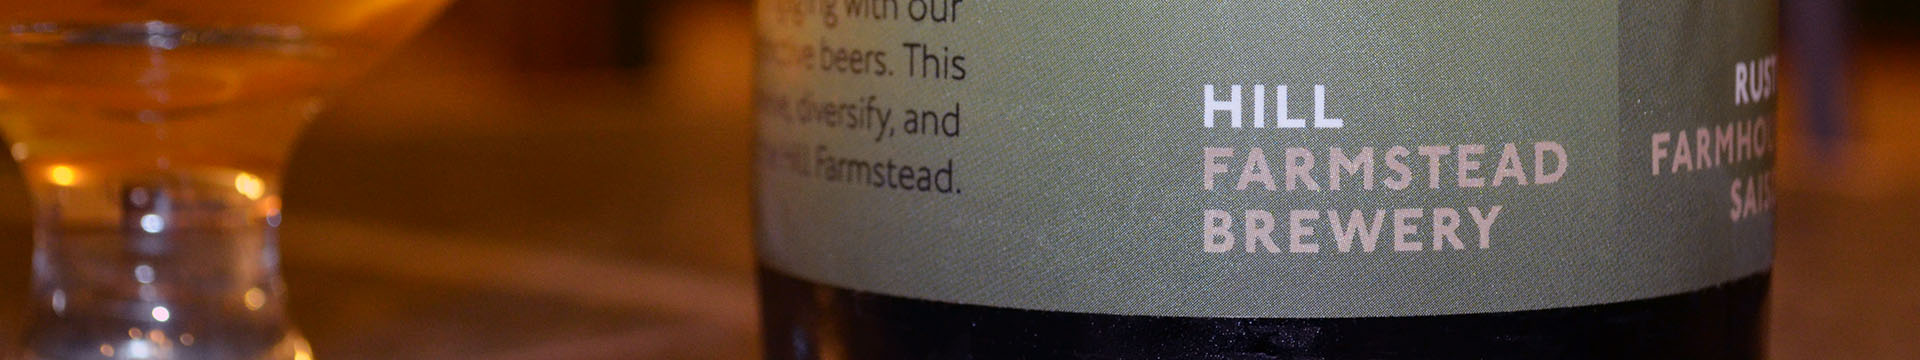 Hill Farmstead Arthur Header